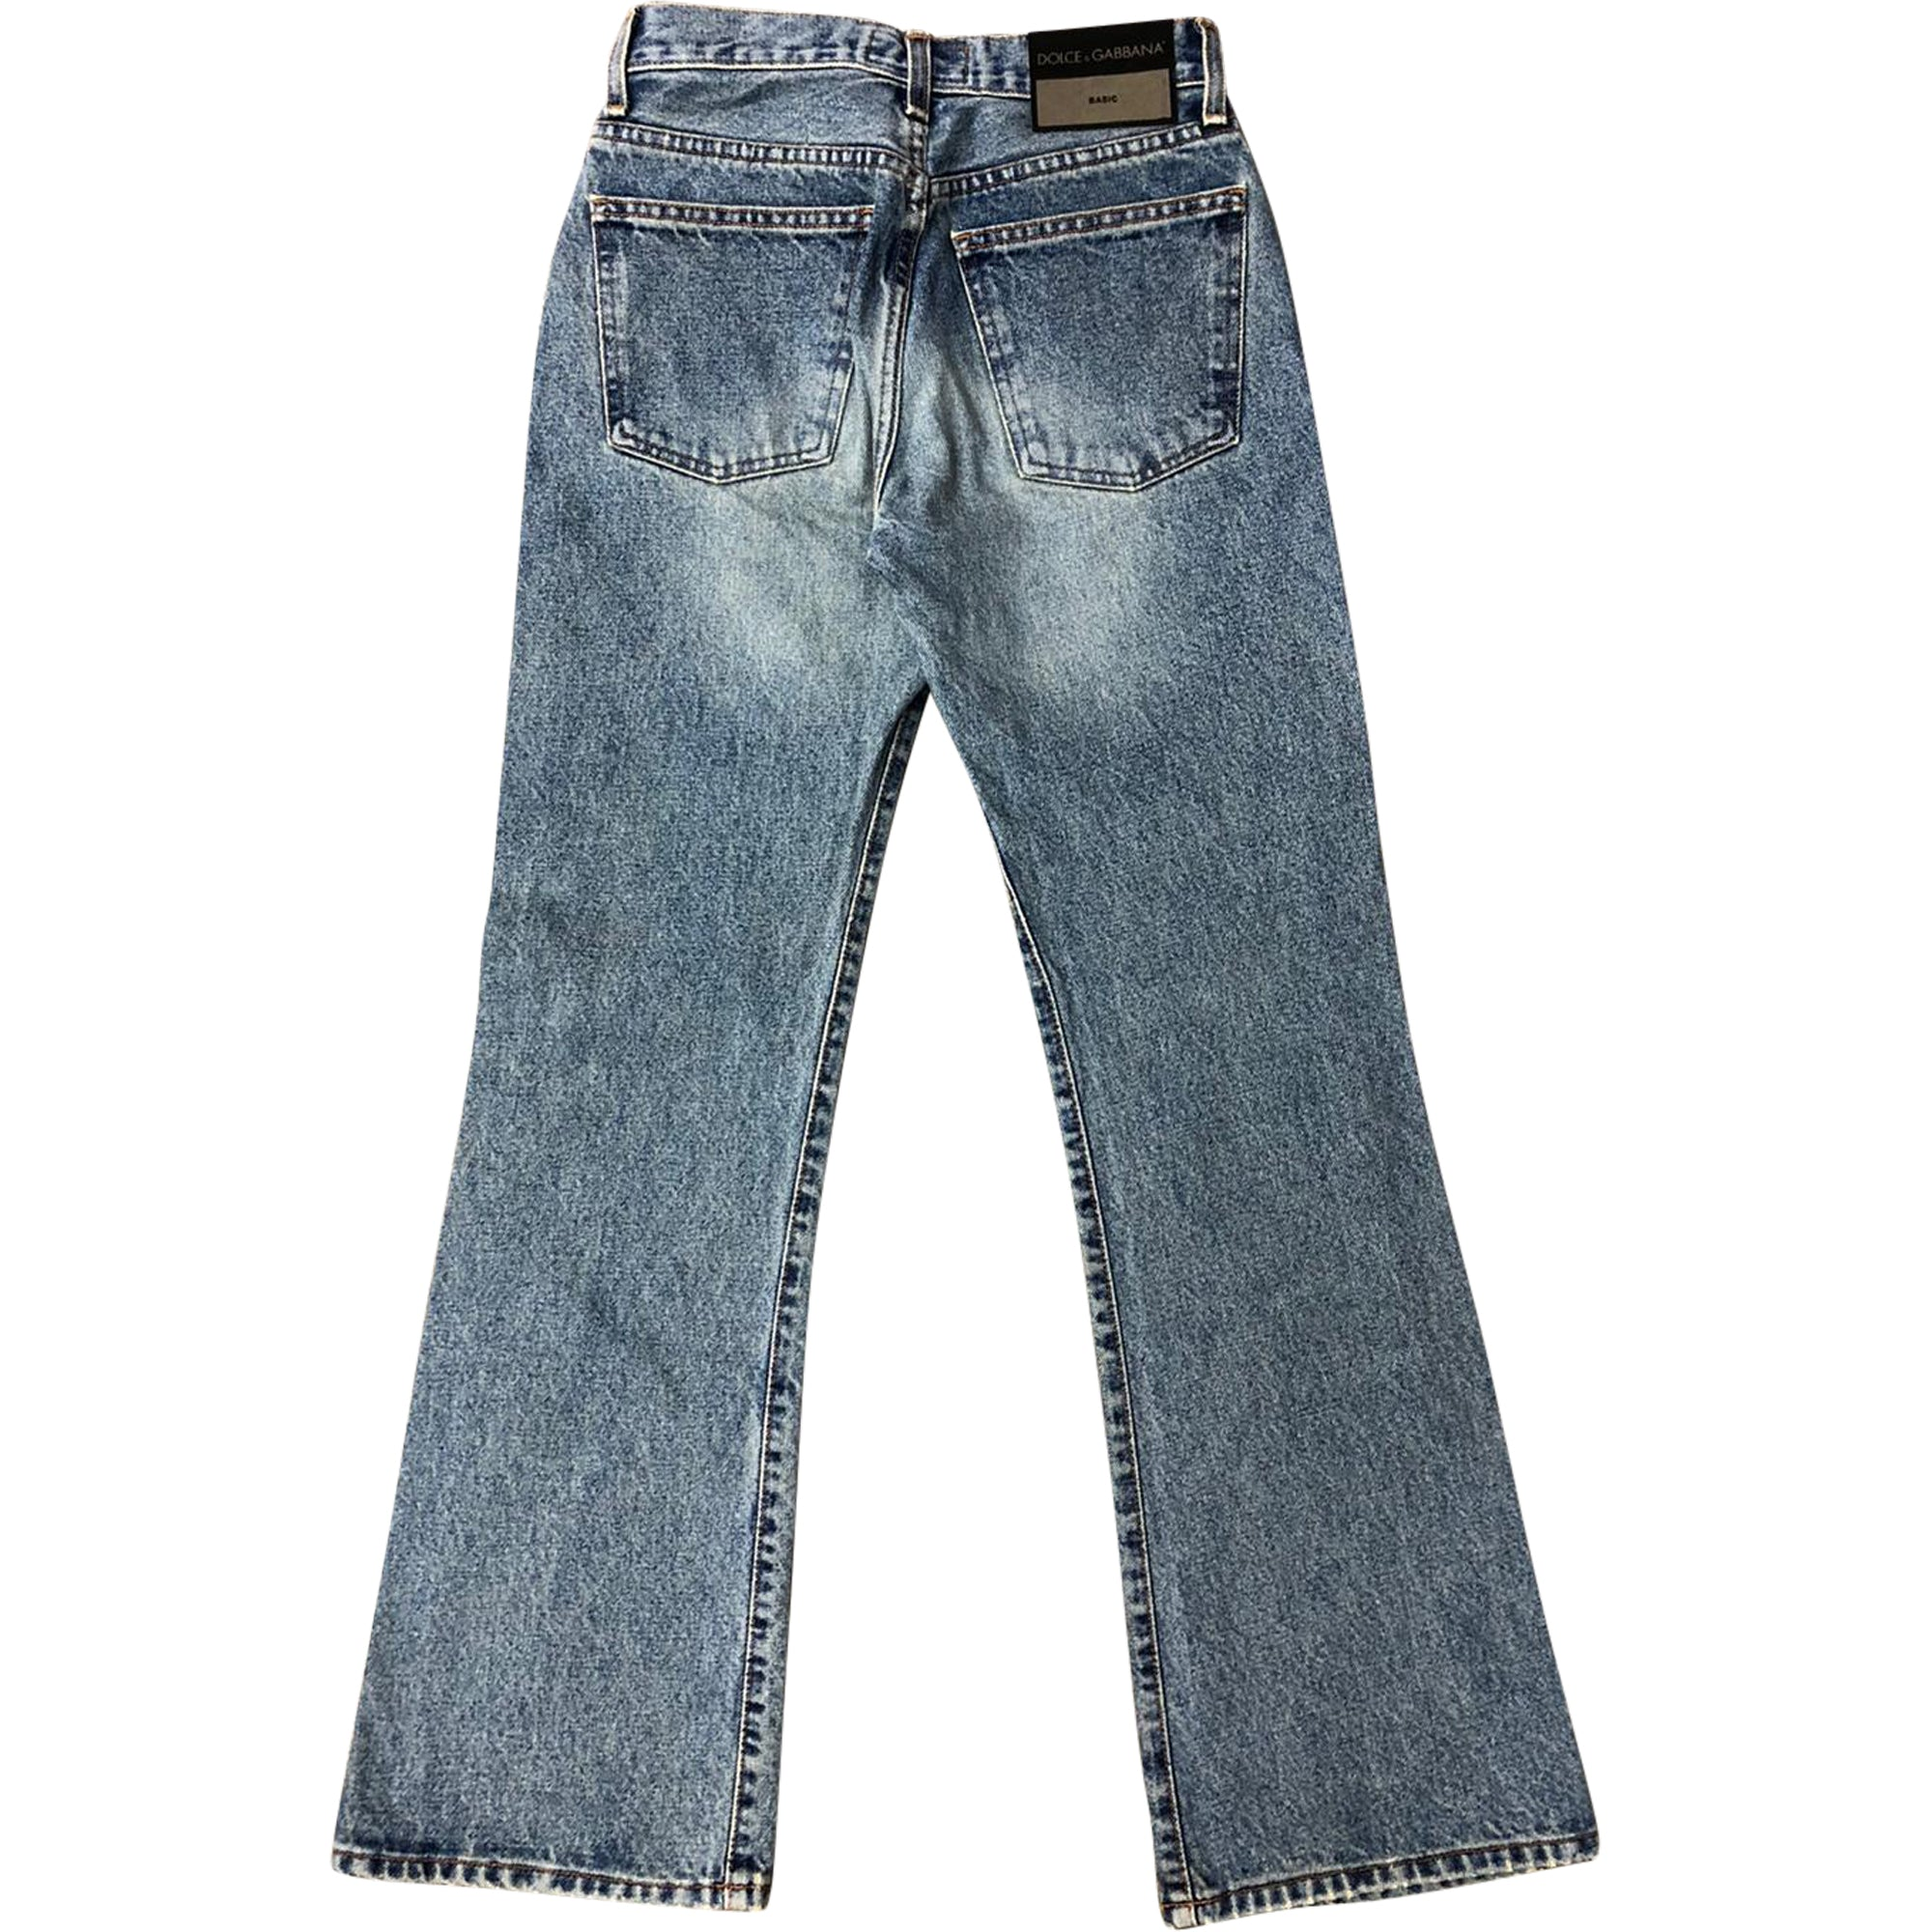 Dolce and Gabbana Bell Bottom Jeans (Rinse Wash) UK 4-6